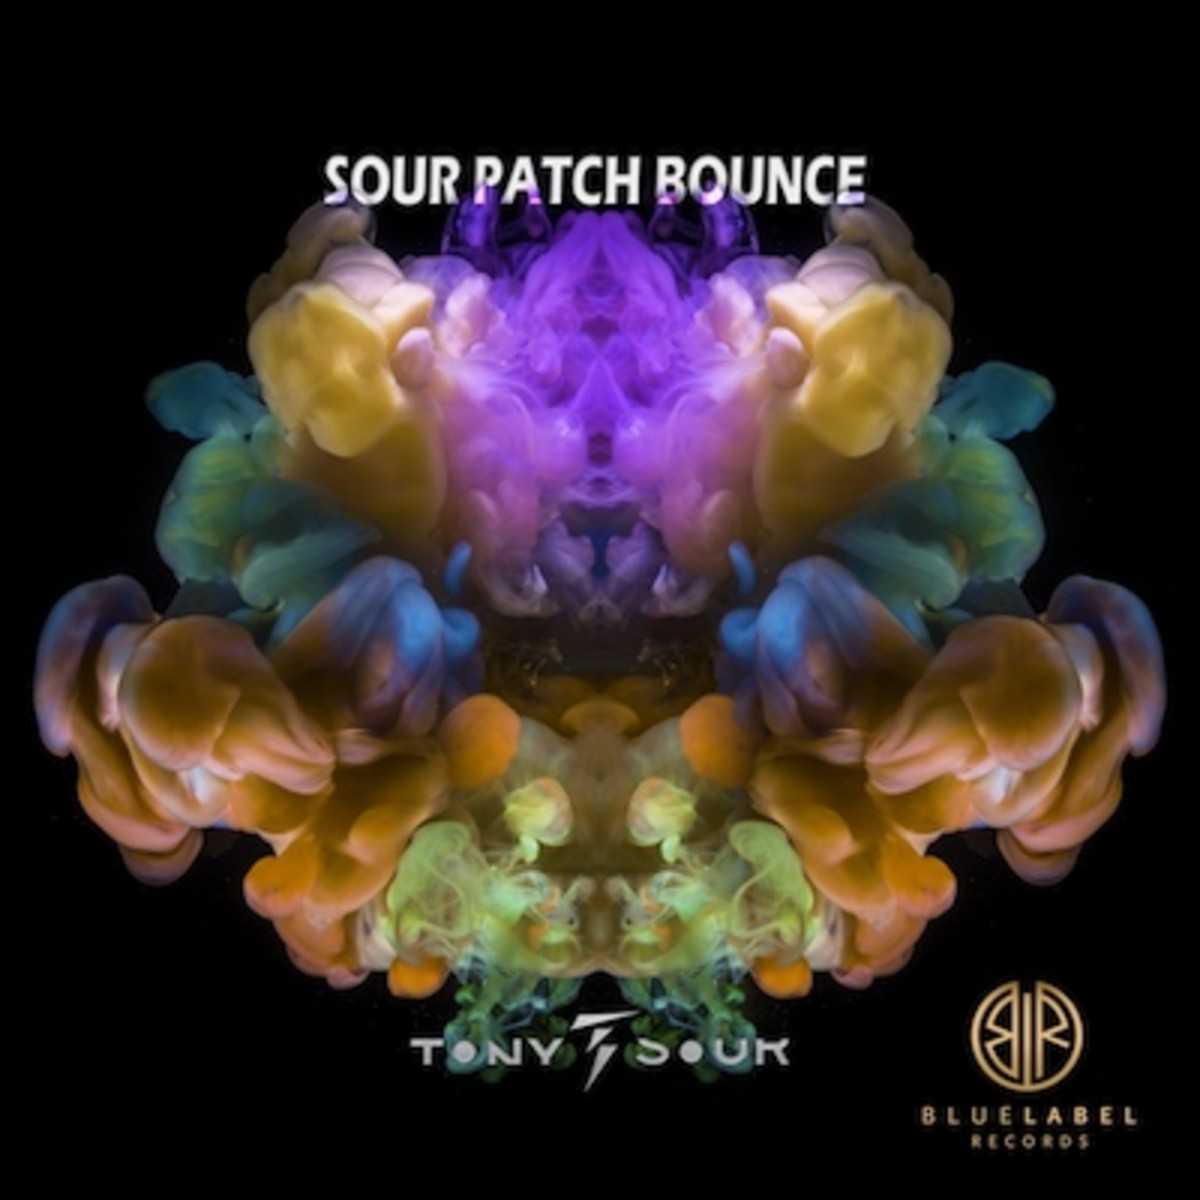 Sour Patch Bounce Sets The Stage For Tony Sour's